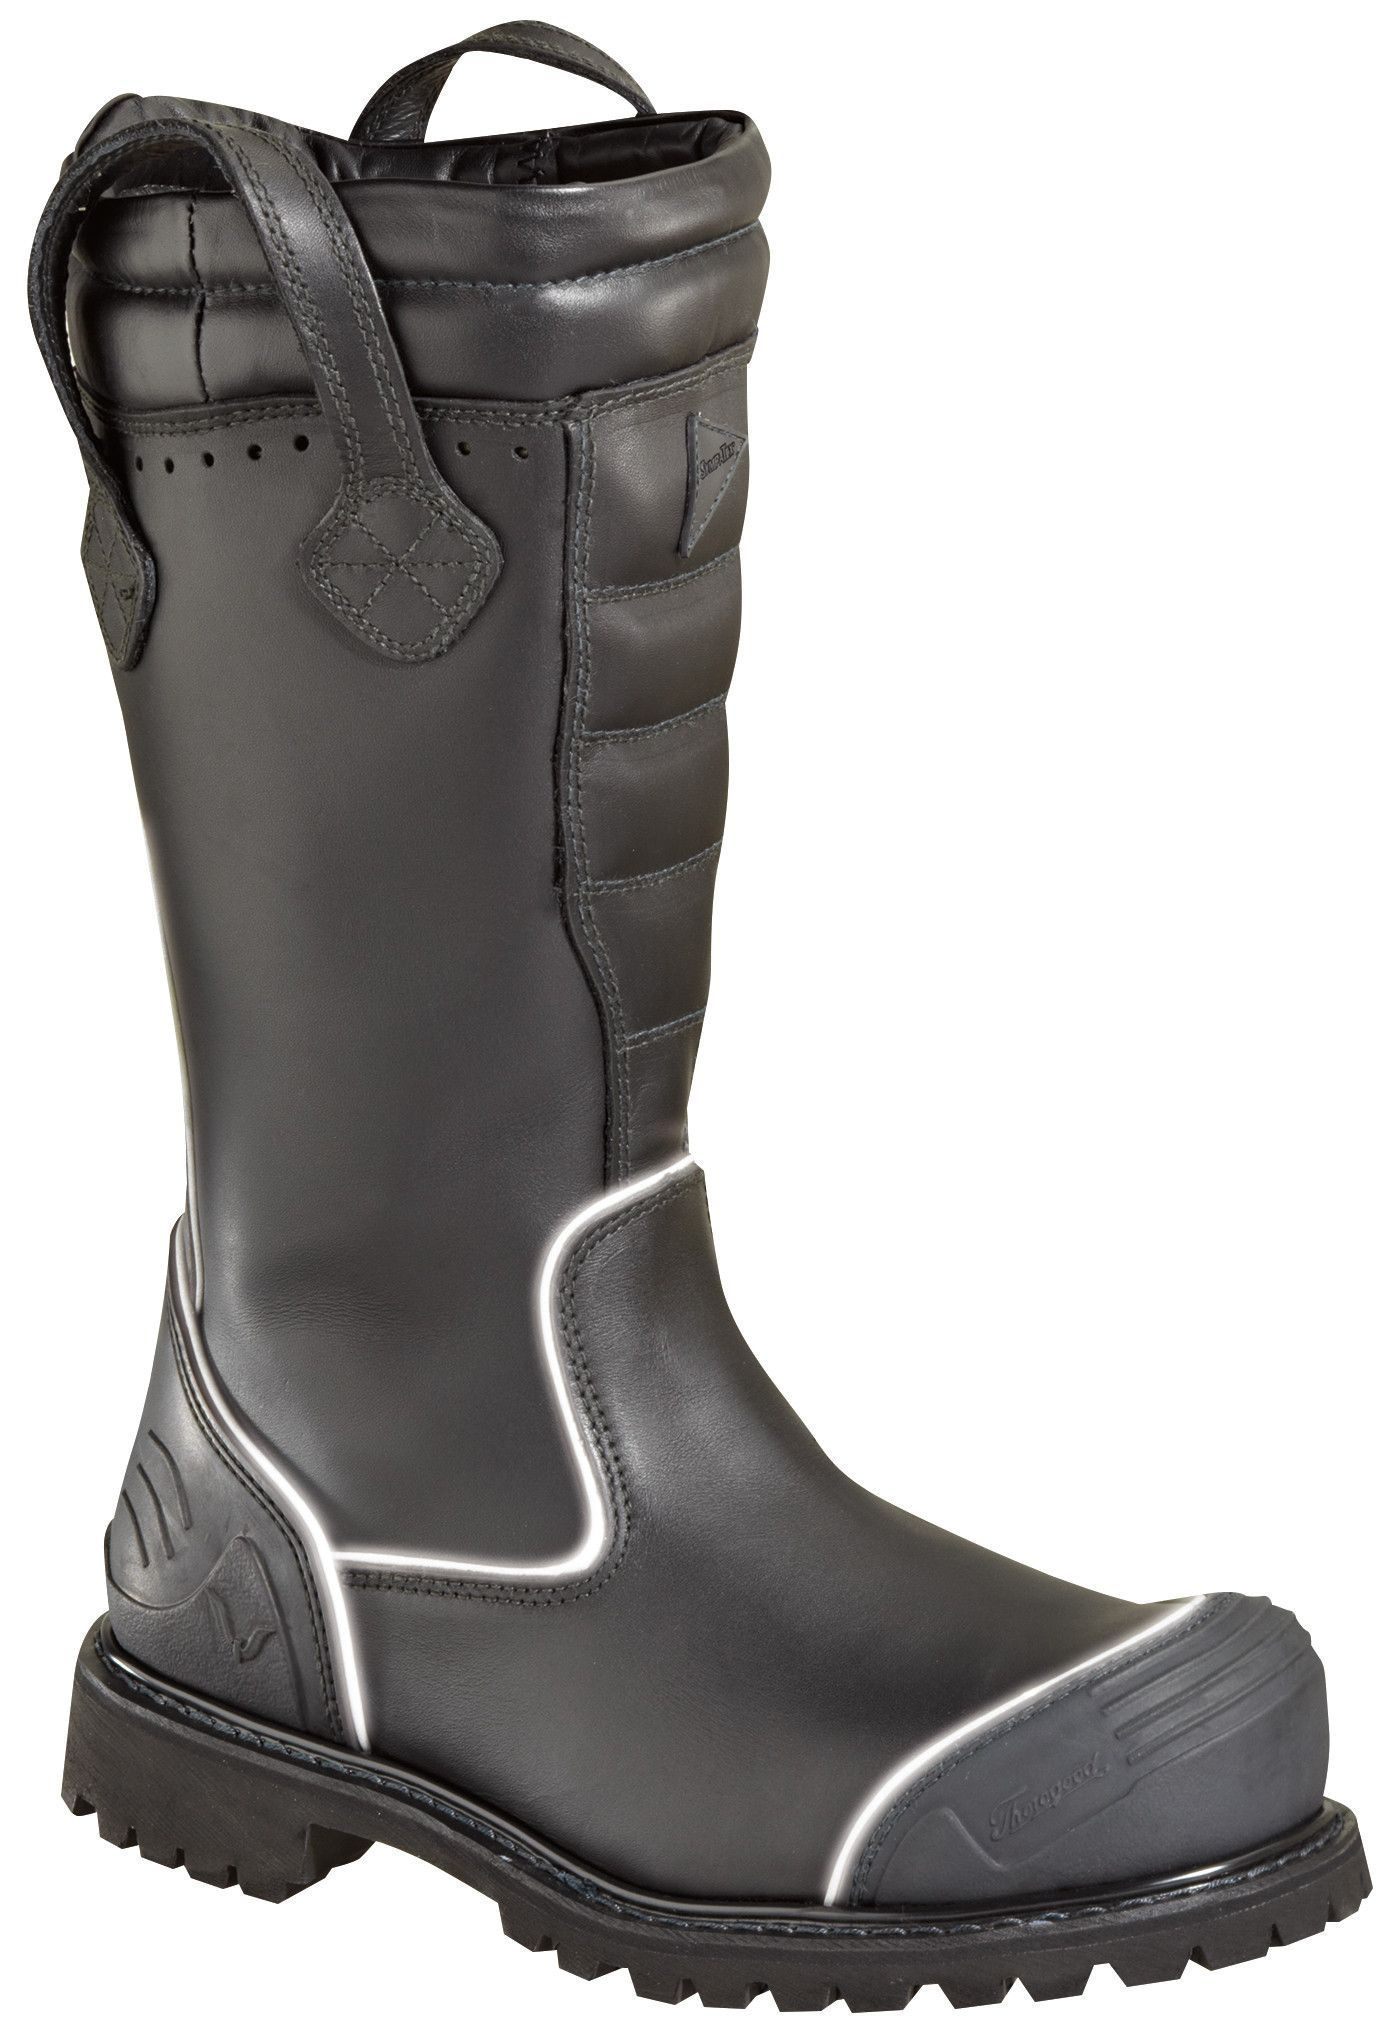 a94253d9579 Thorogood Womens Power Black Leather Work HV Structural Bunker Boot ...